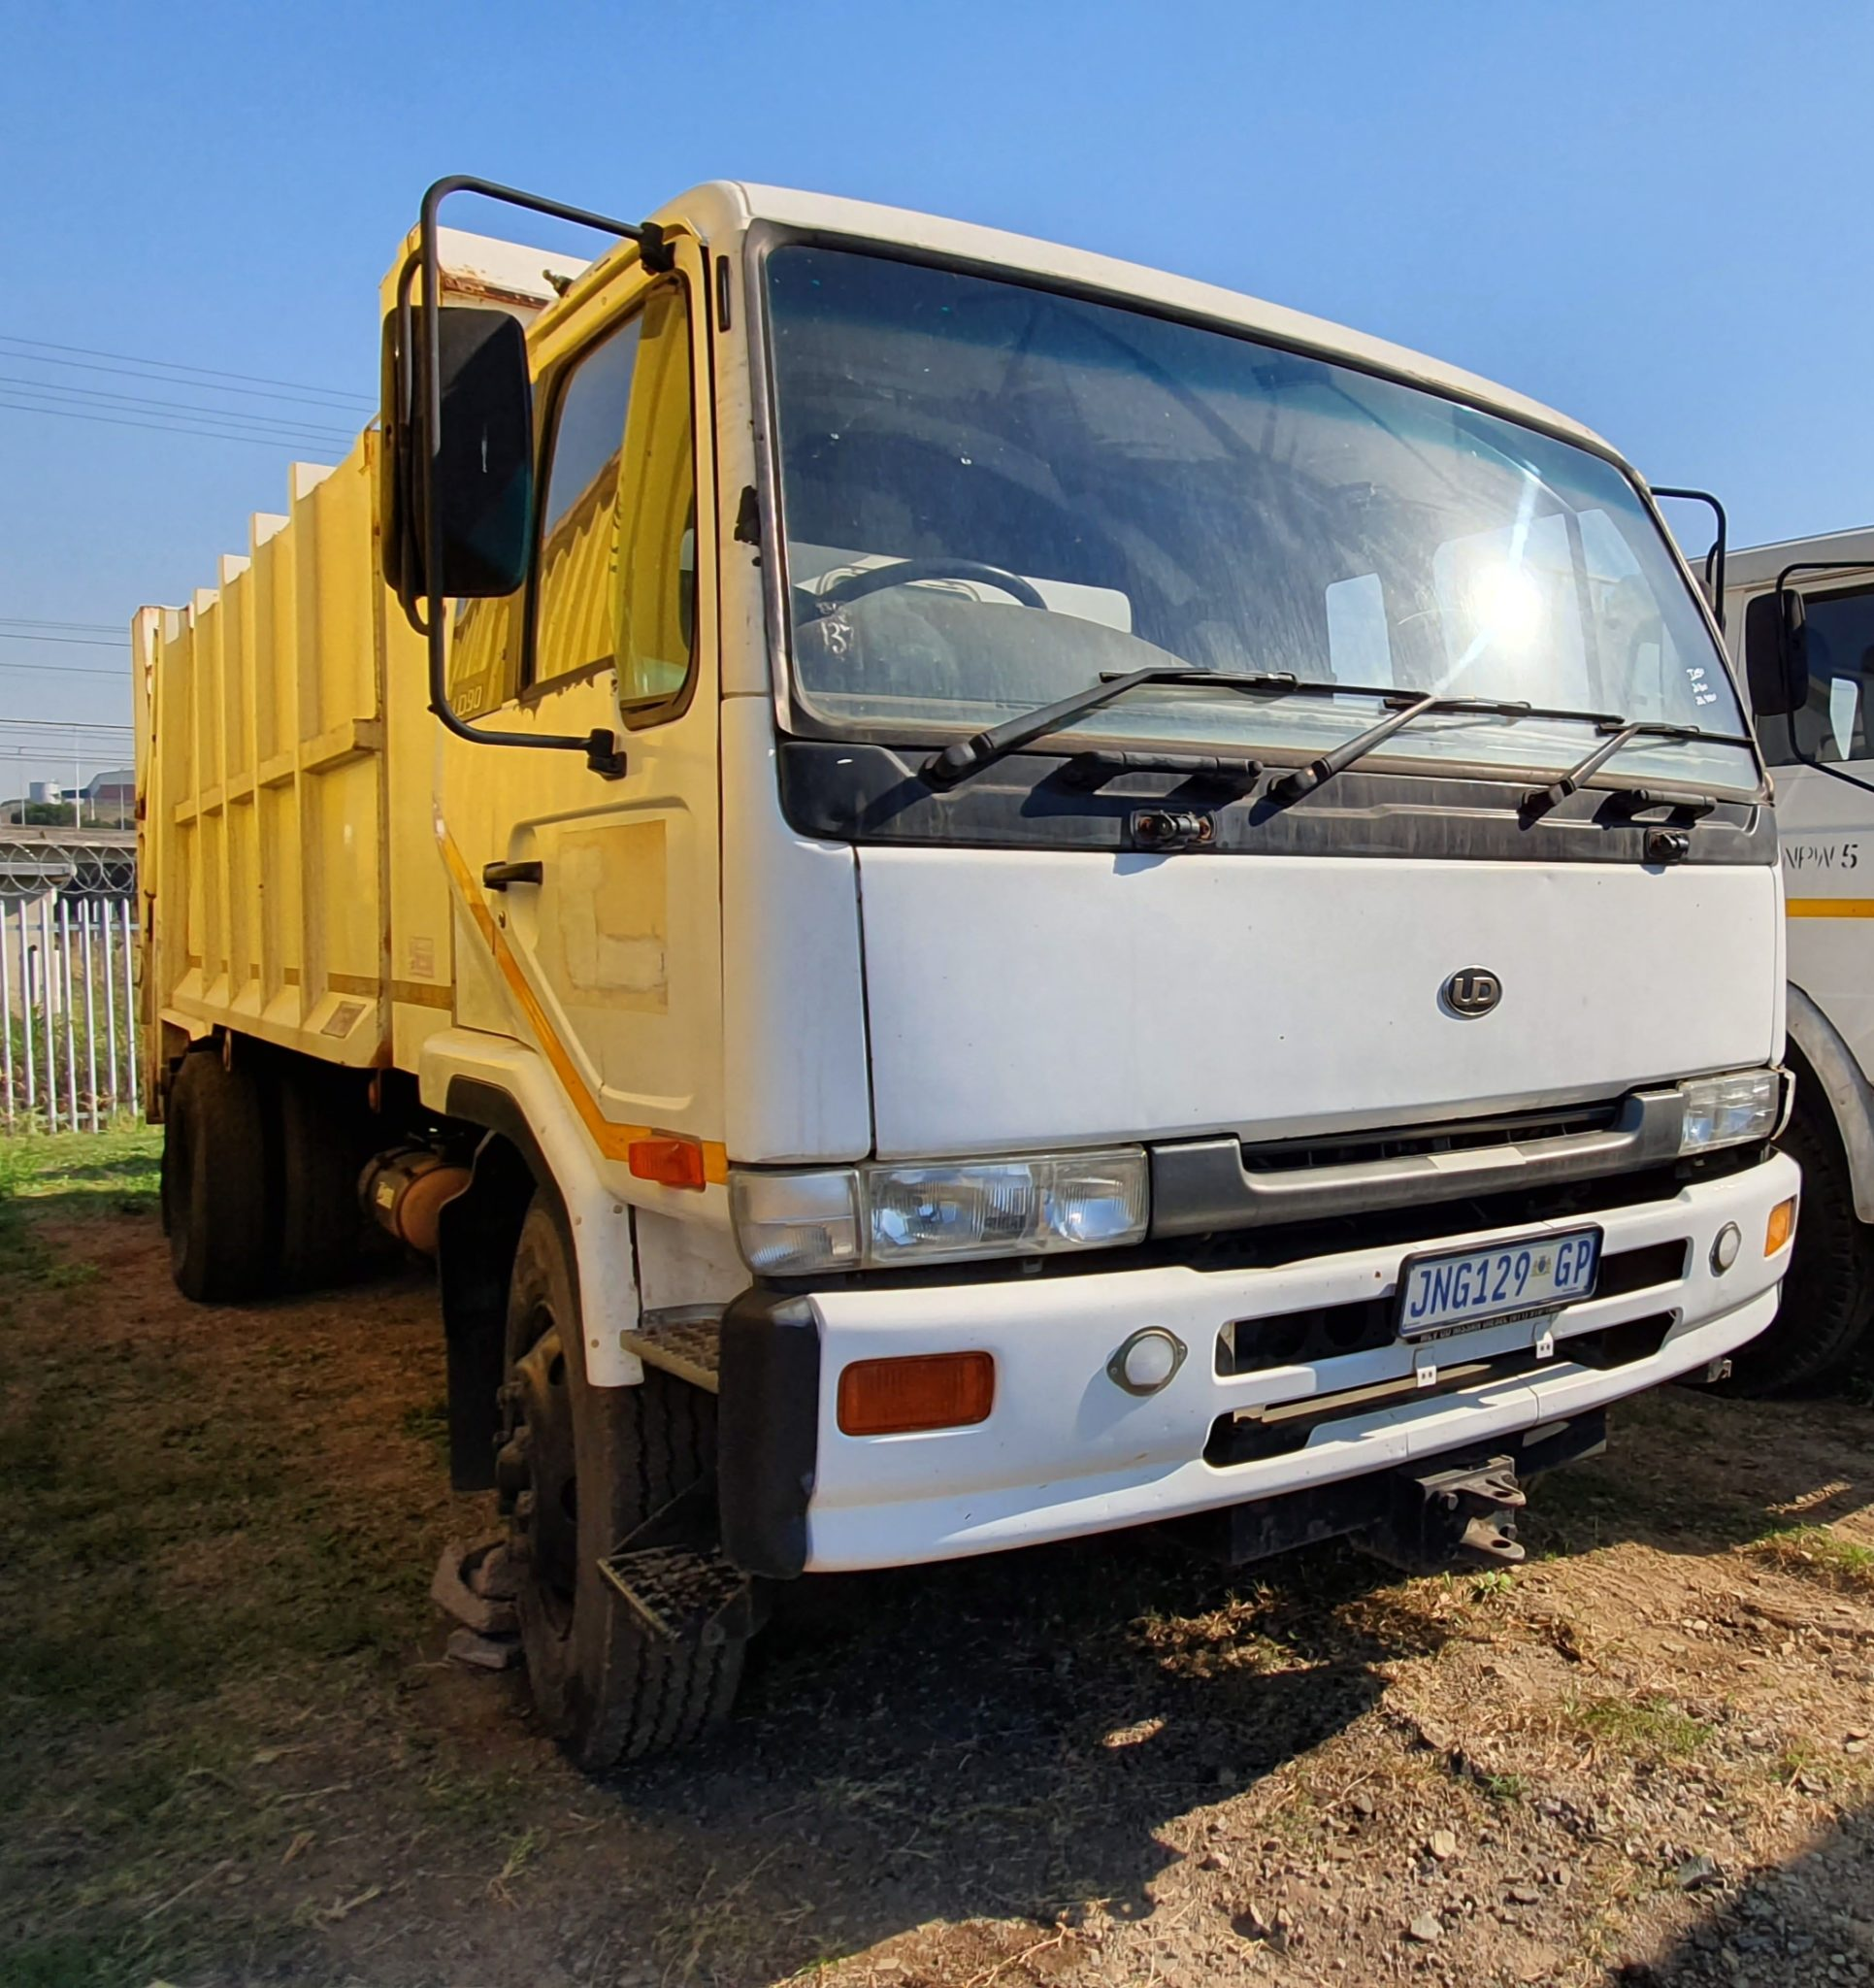 1999 NISSAN UD90 REFUSE COMPACTOR Image